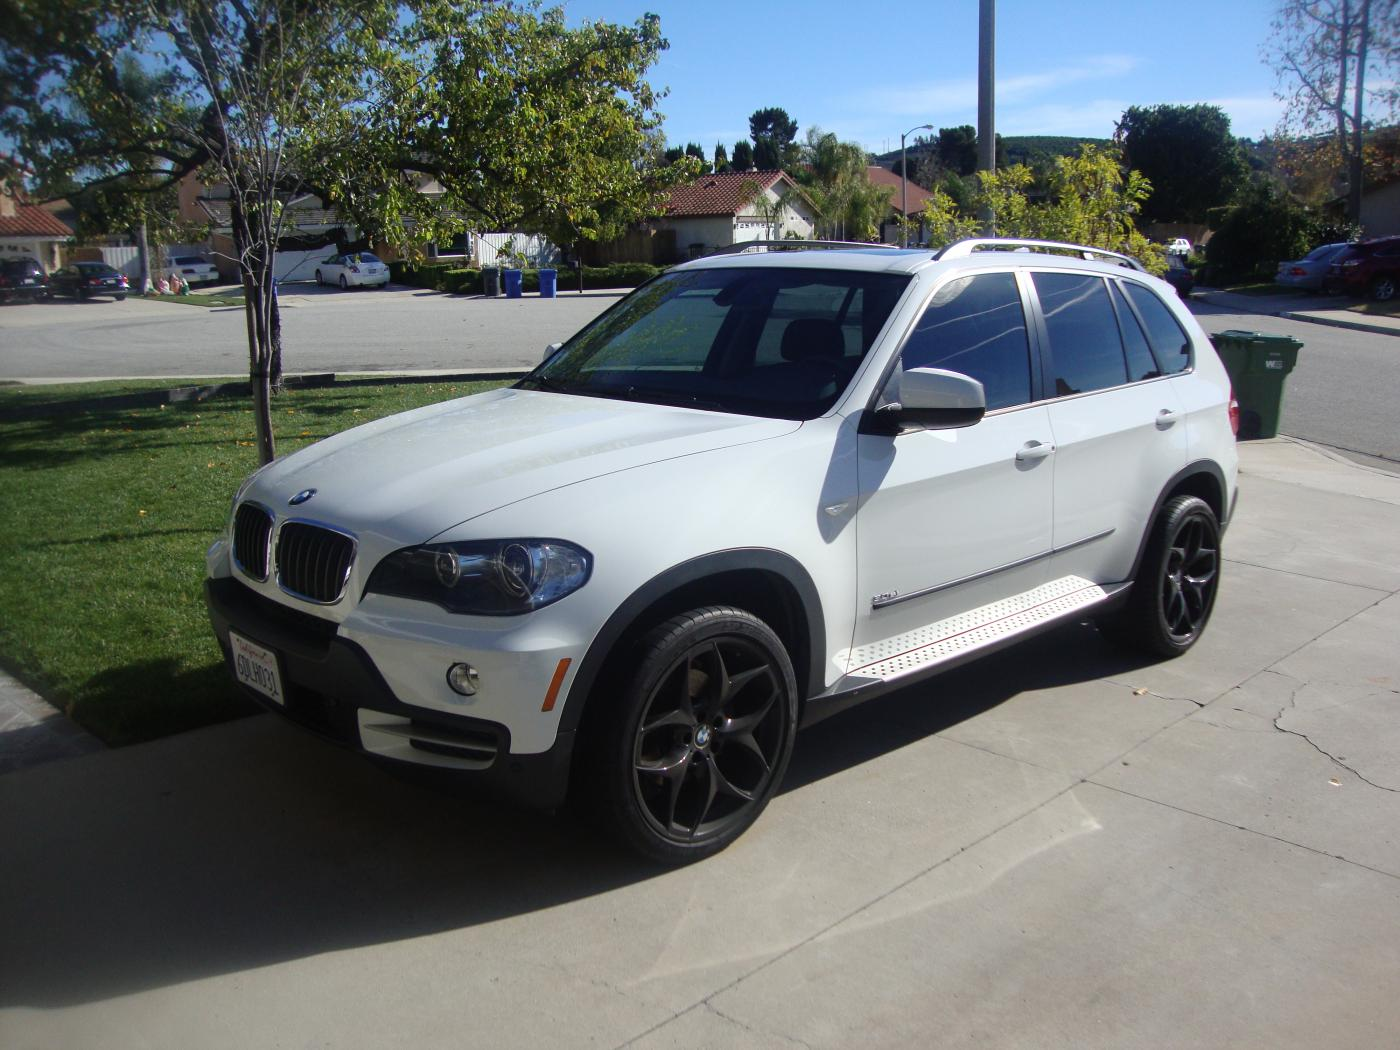 Worksheet. 2008 bmw x5 for sale